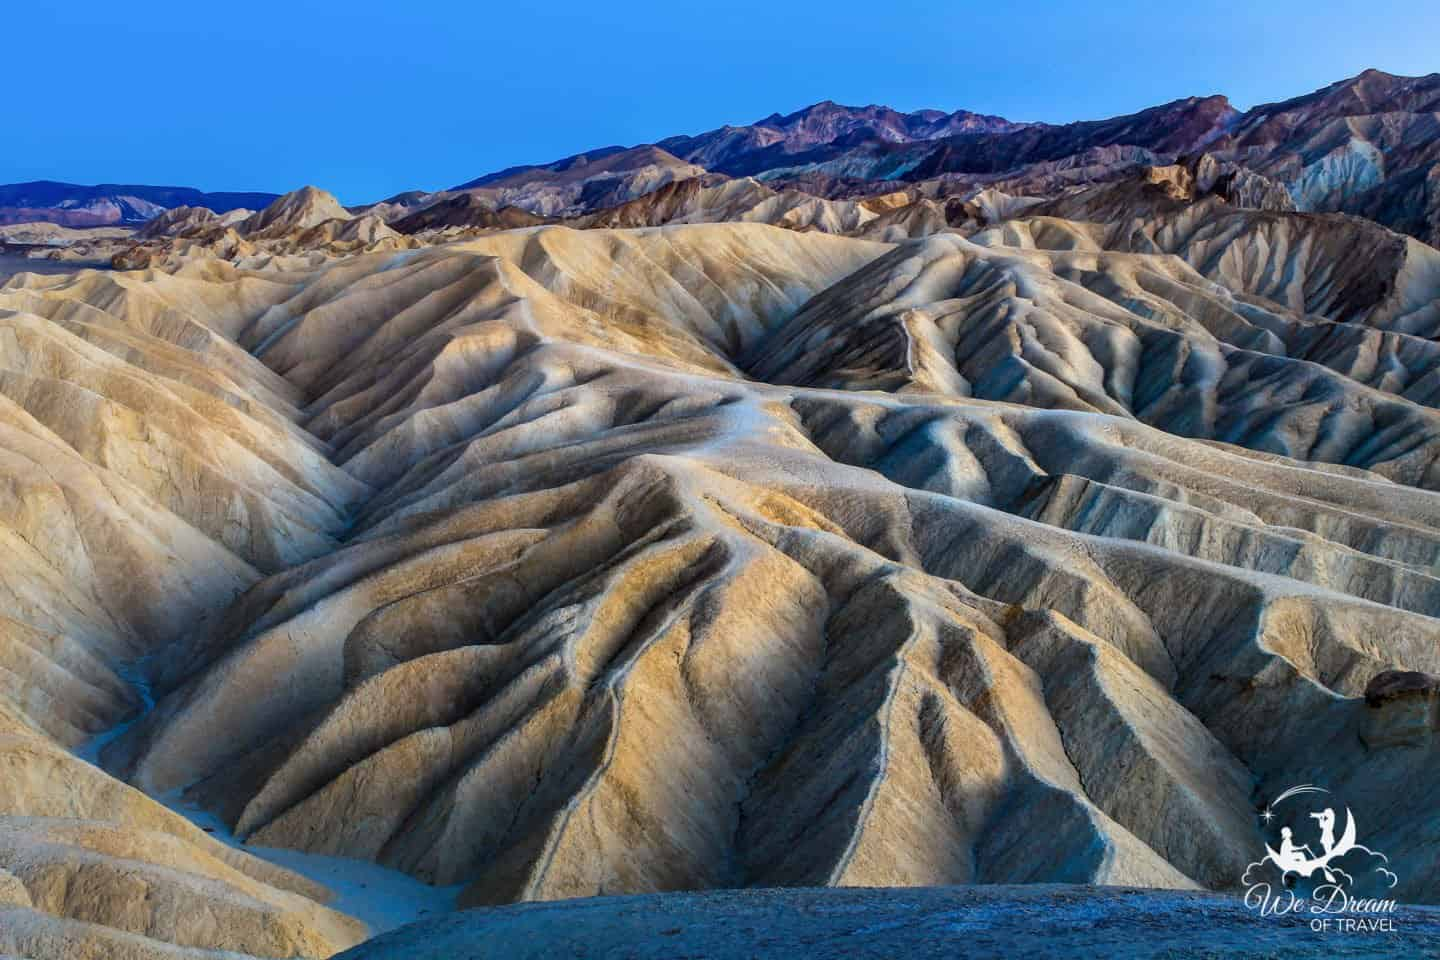 Zabriskie Point in Death Valley looks like something plucked from a dream or another planet.